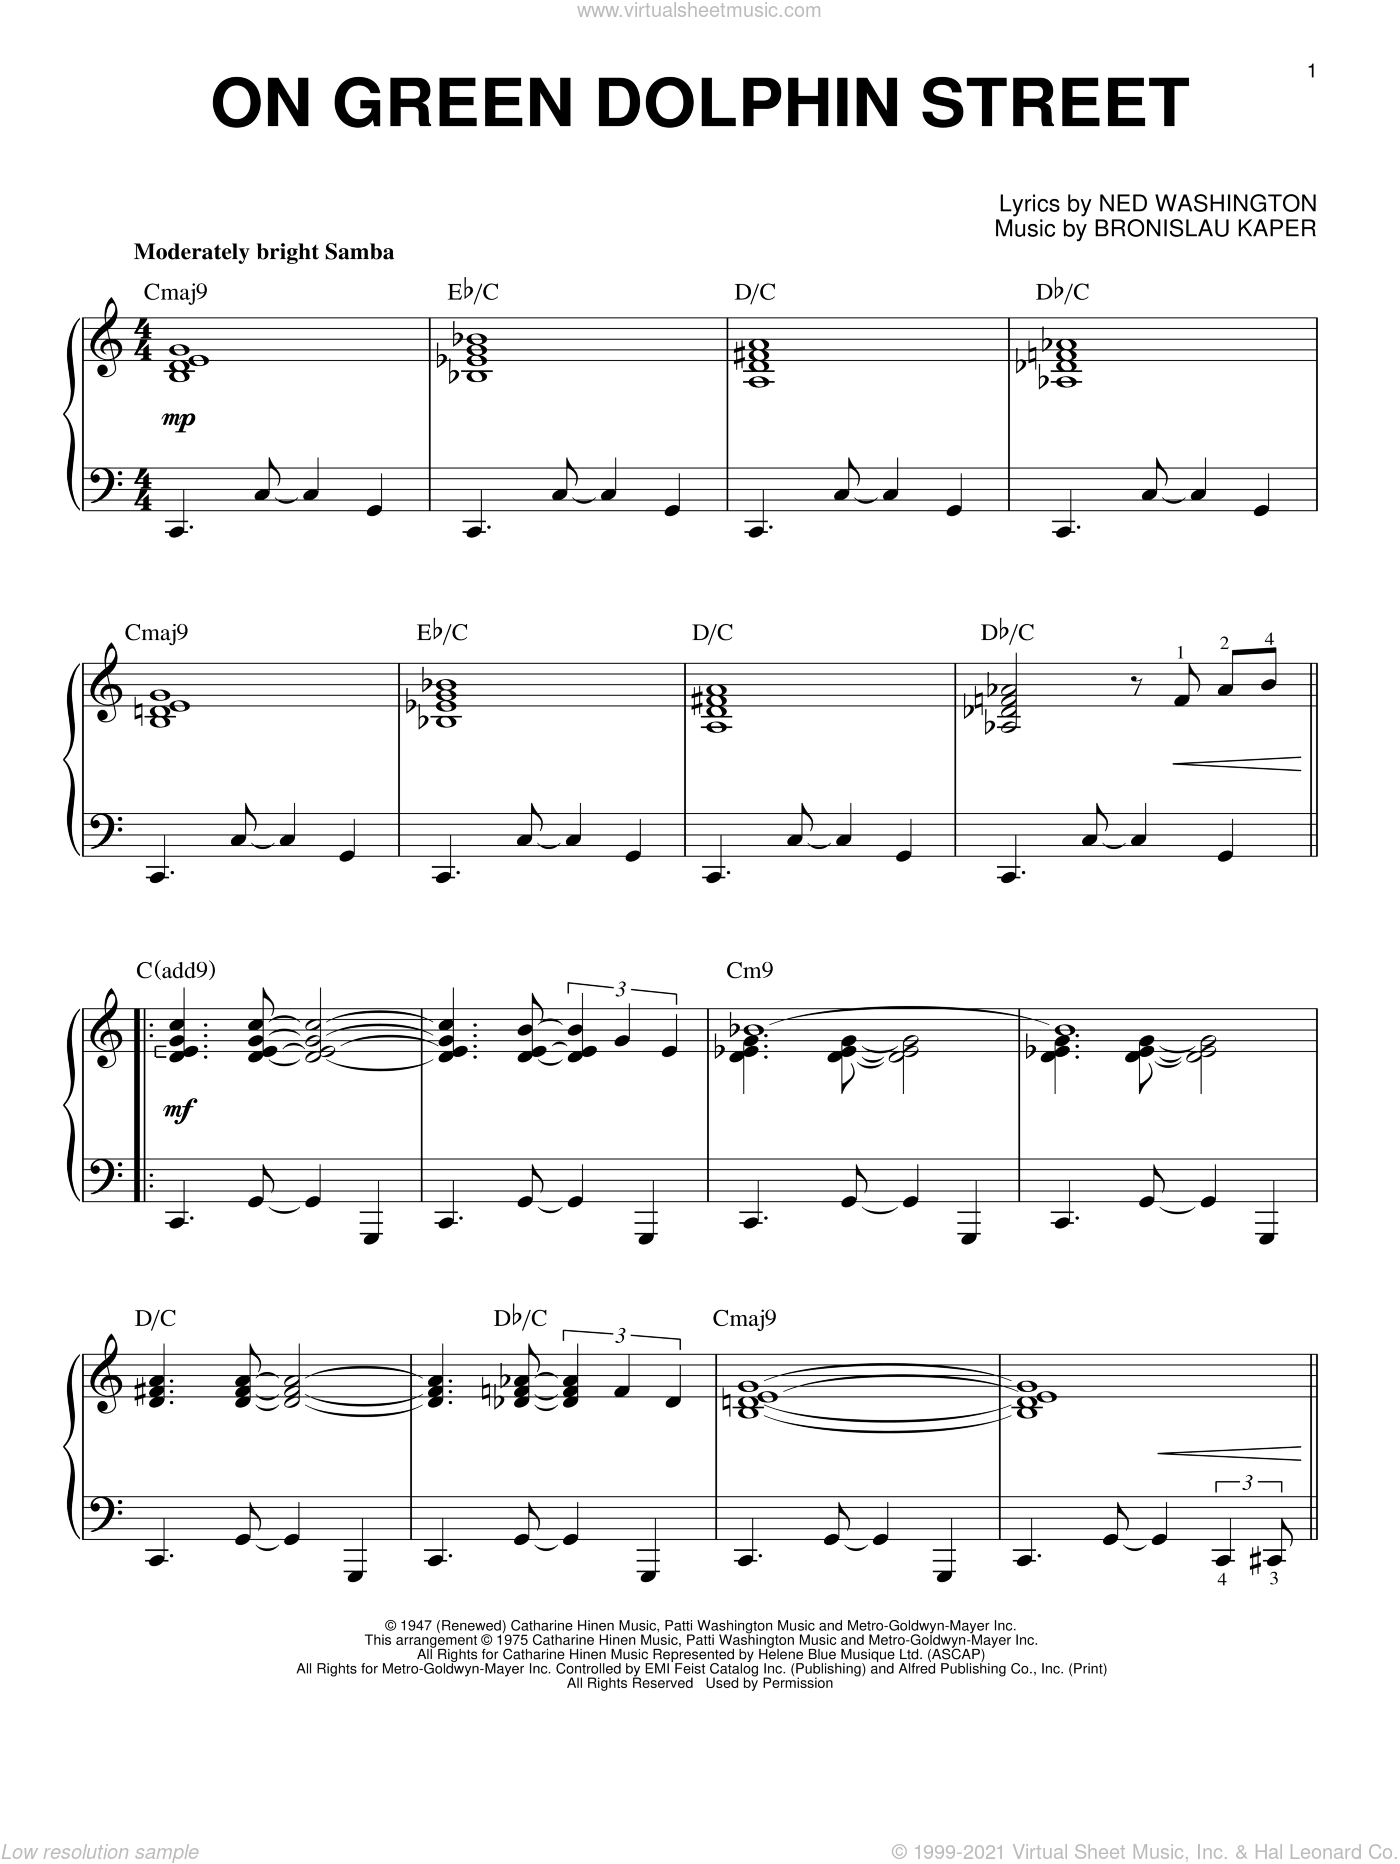 On Green Dolphin Street sheet music for piano solo by Ned Washington